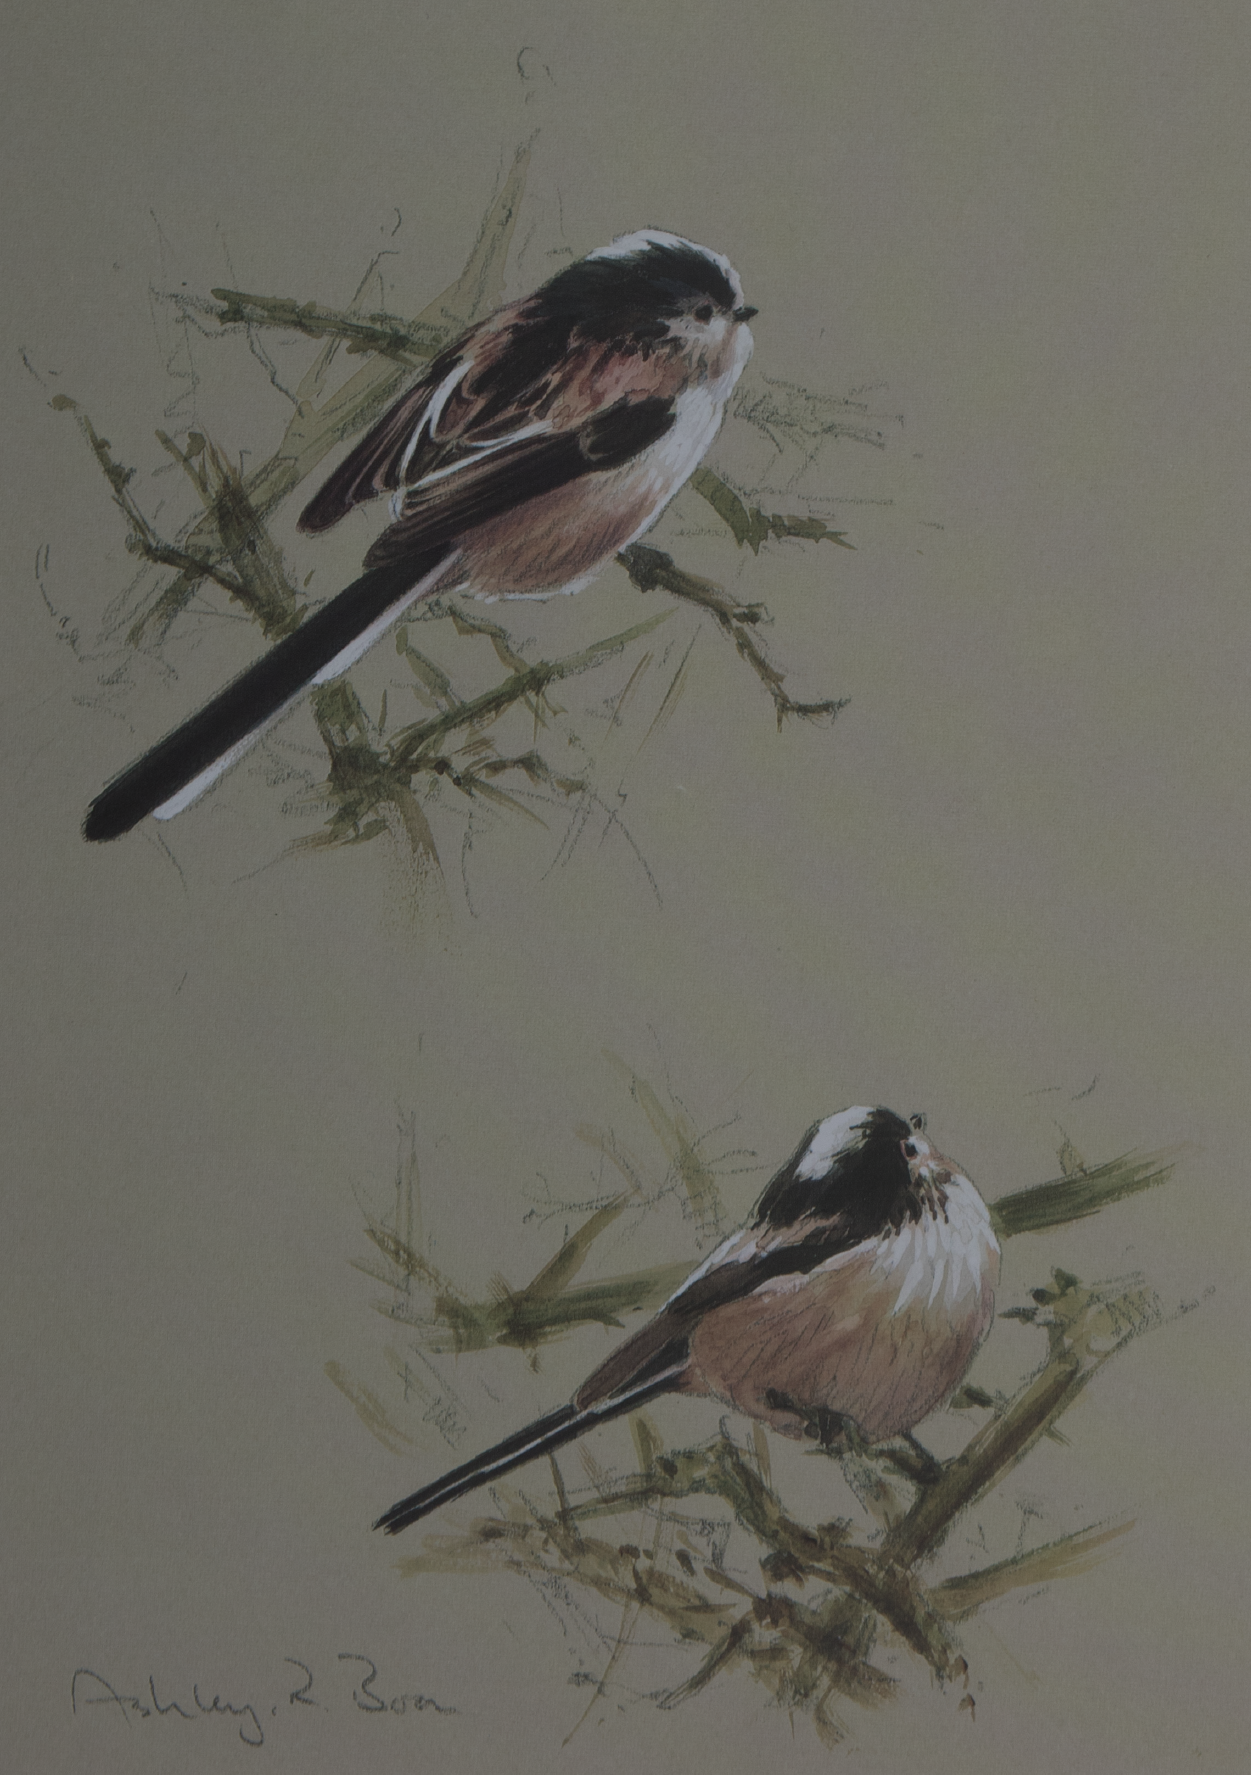 Long-tailed Tit/ Titmice/ British/Garden Birds/ Images/Paintings/Art